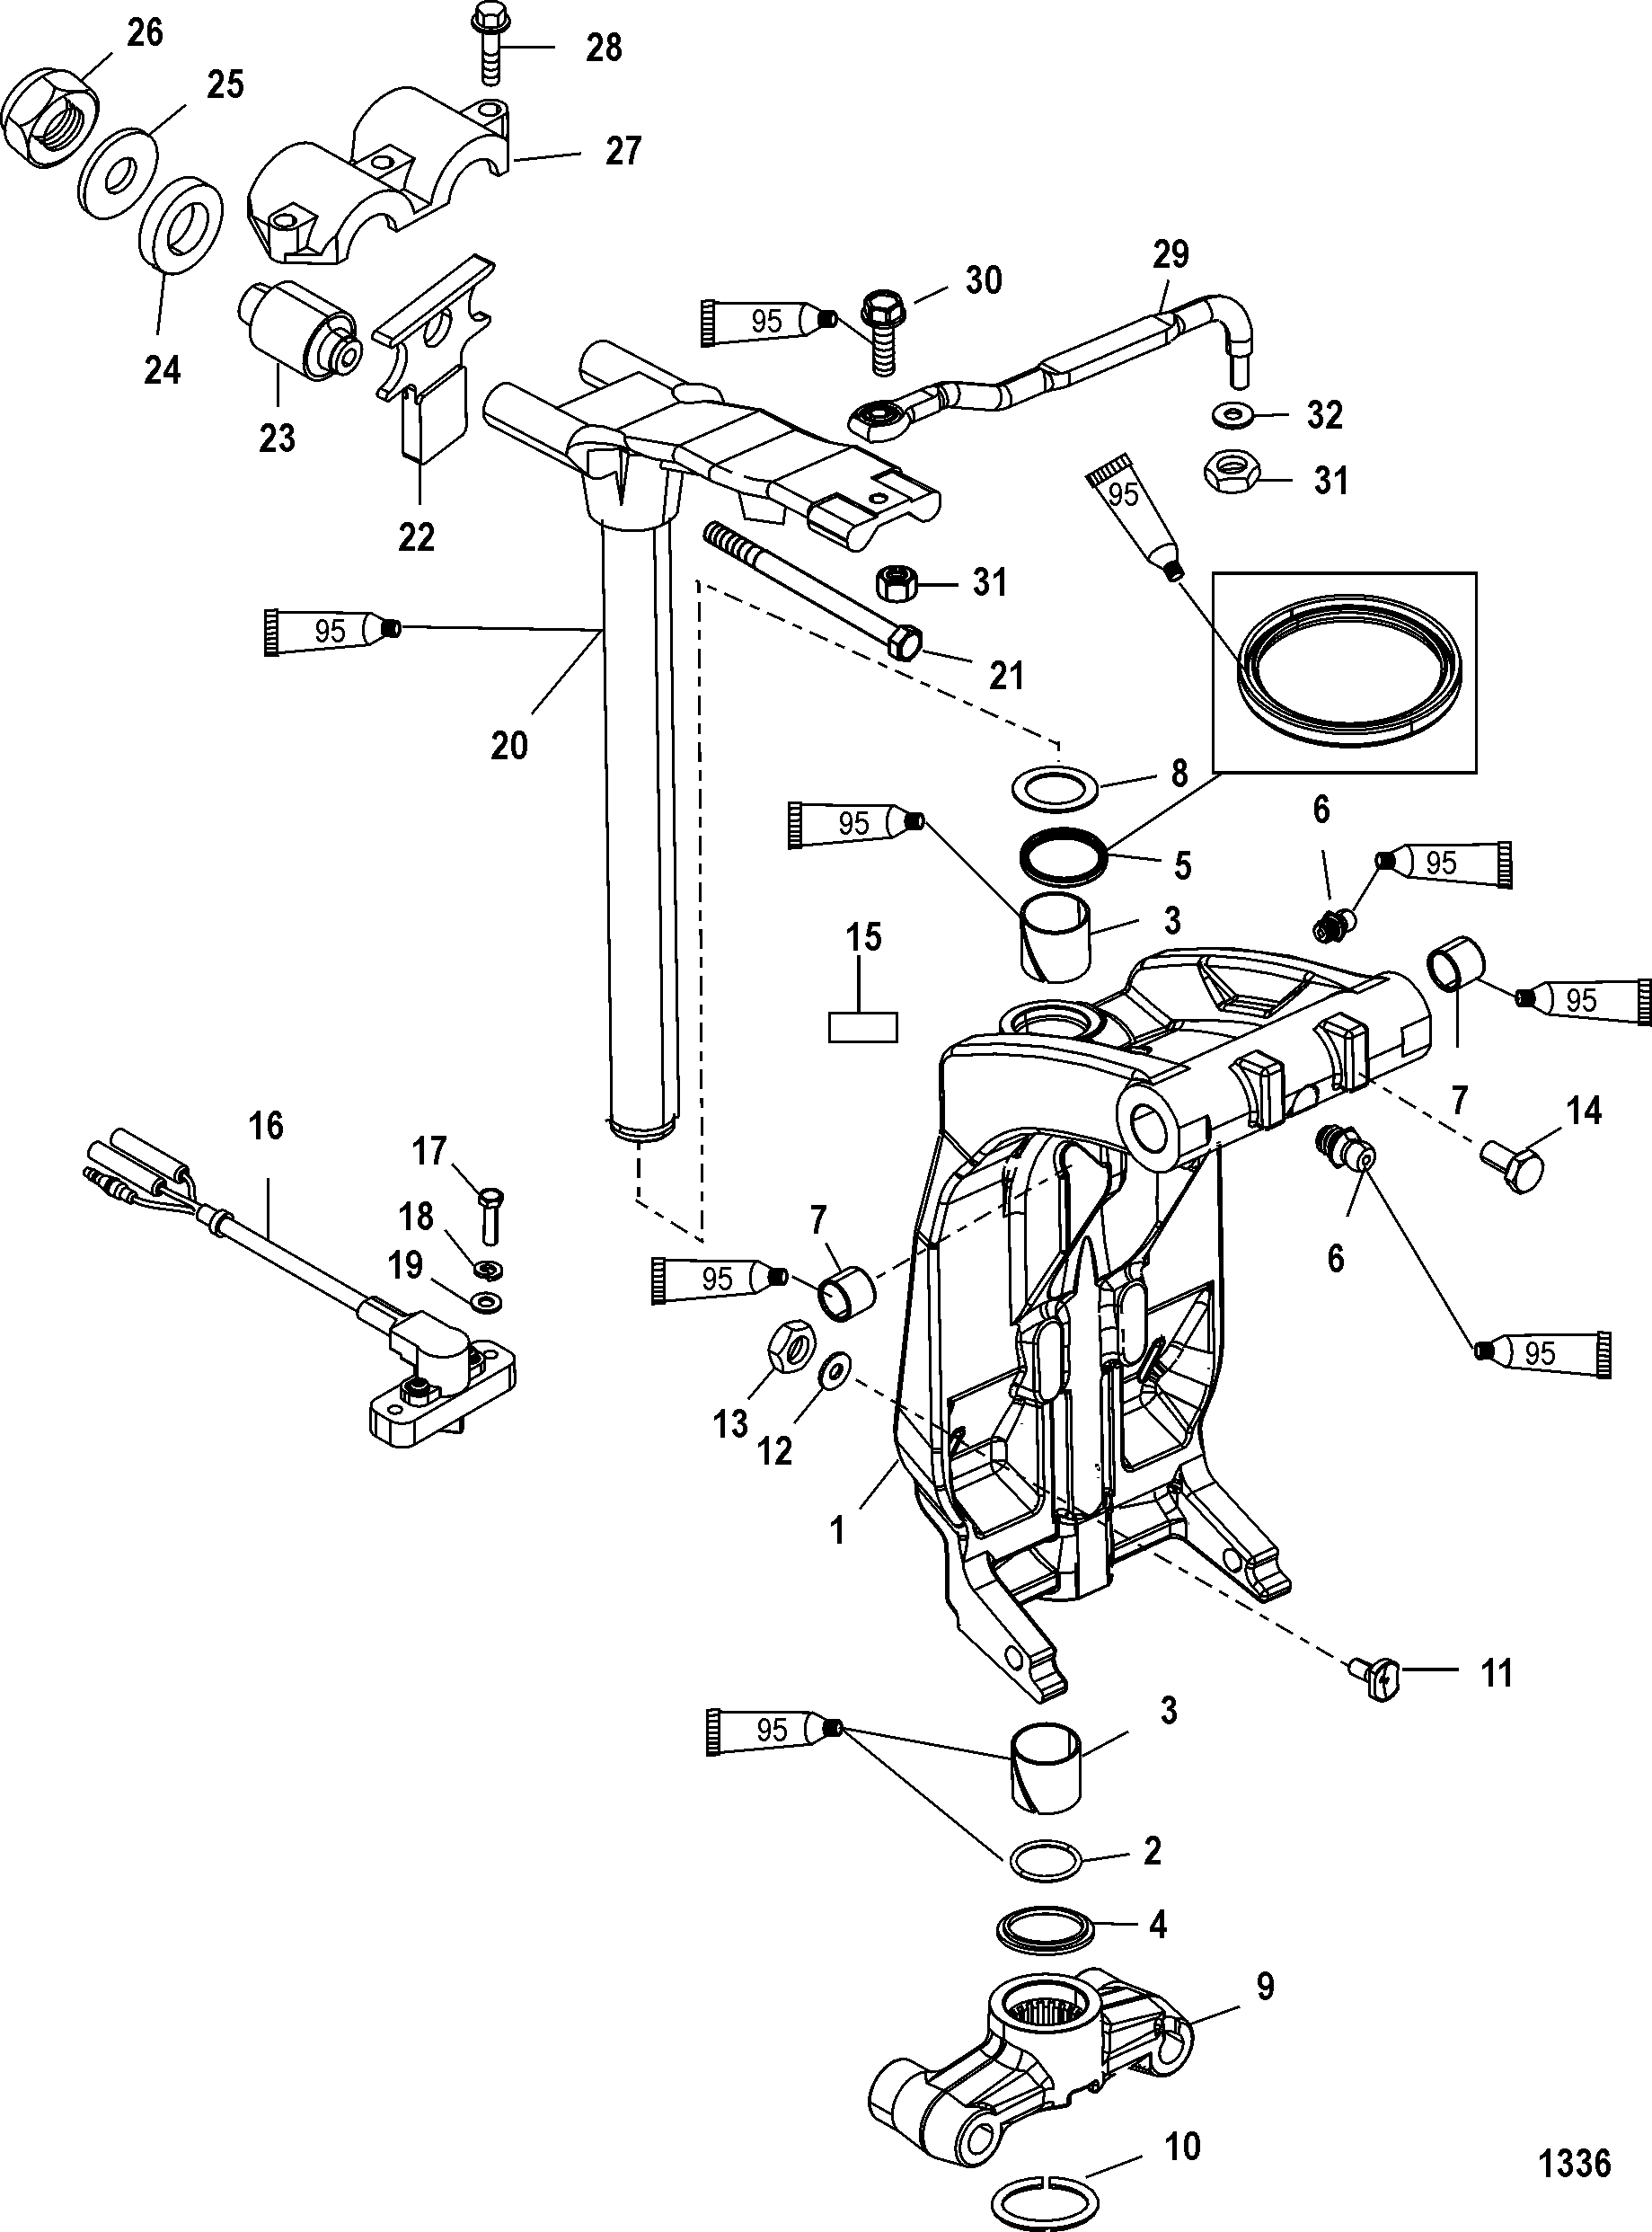 swivel bracket and steering arm for mercury 200 optimax v6 dfi